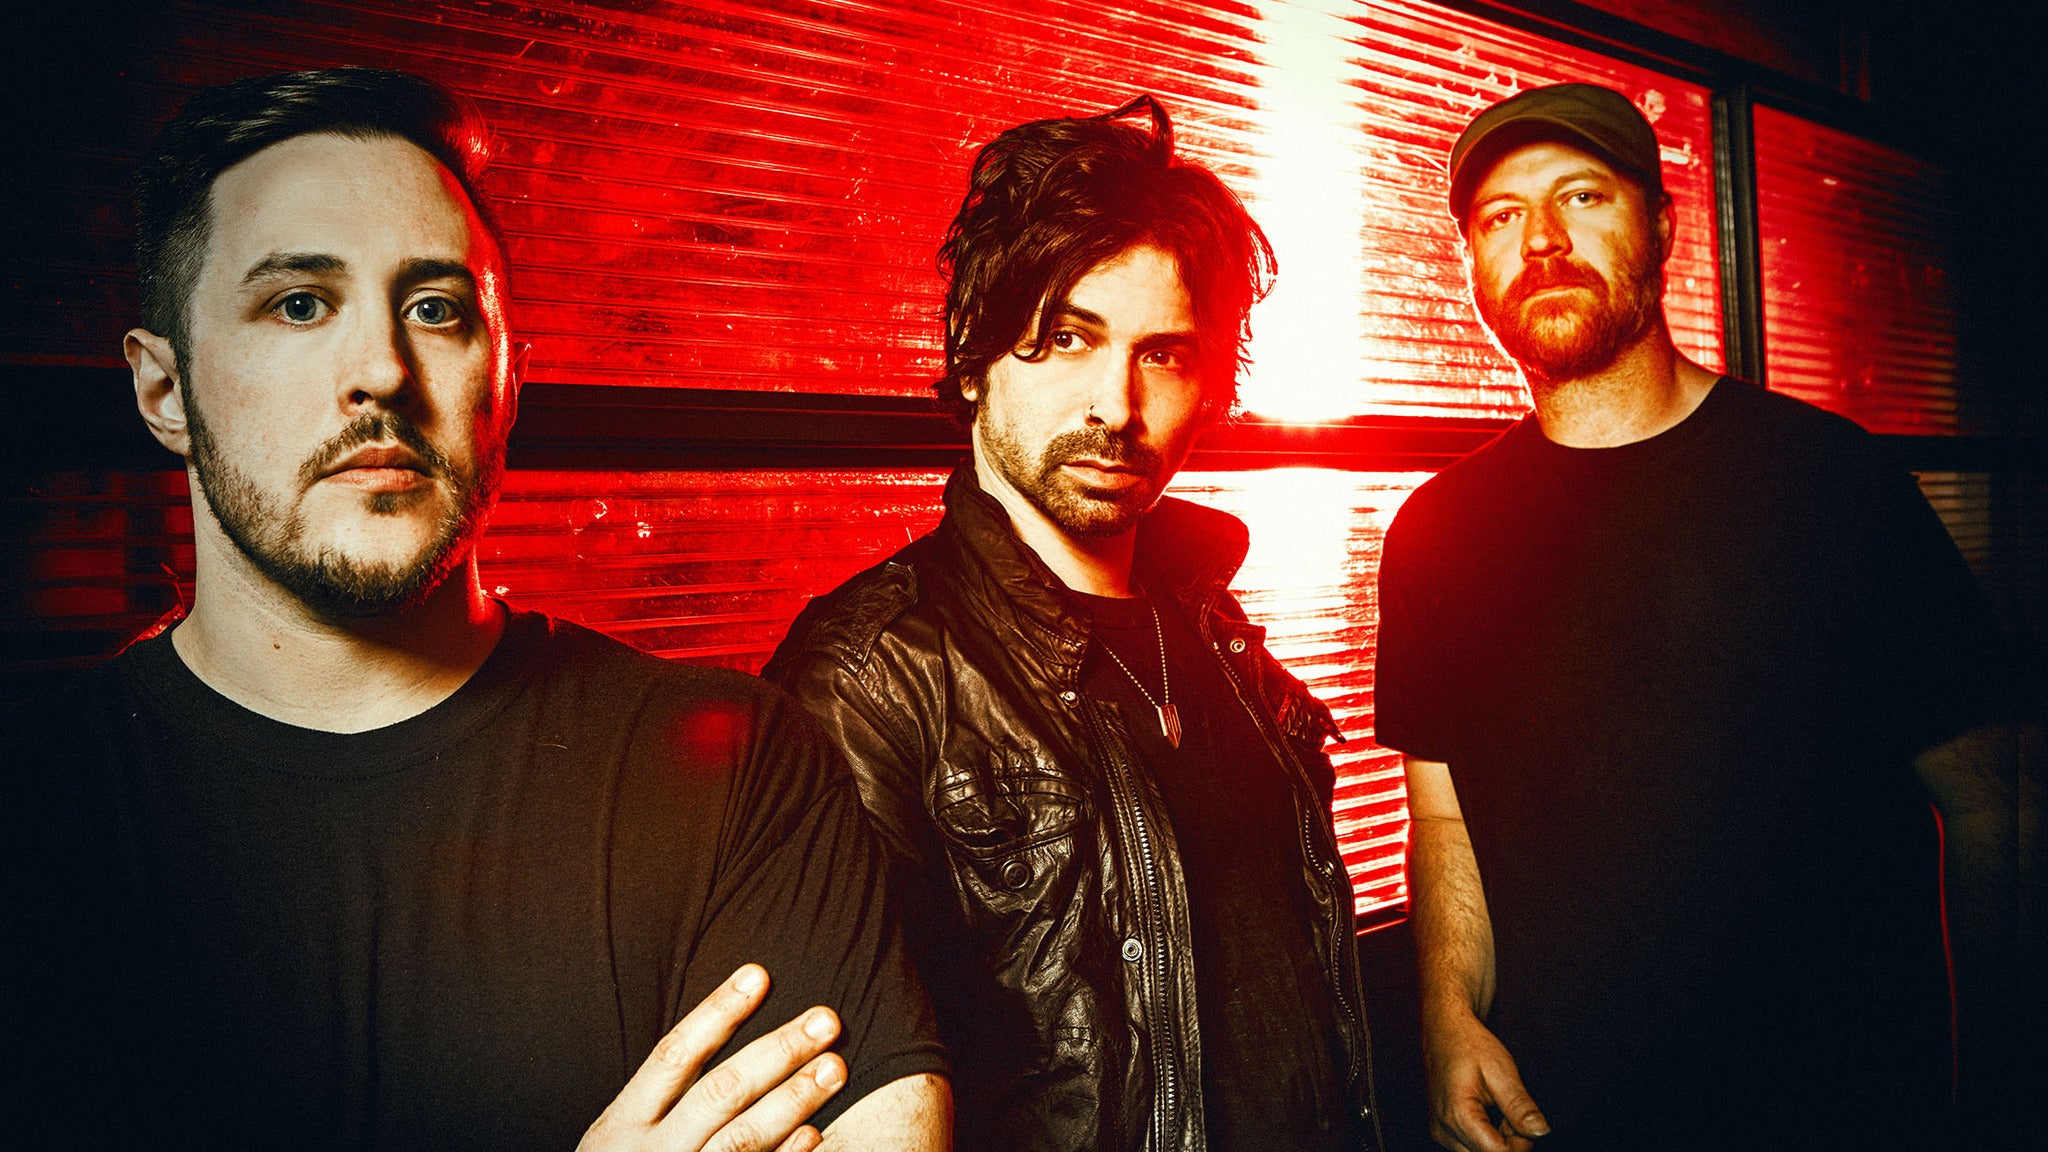 CKY w/ Slaves at Asbury Lanes